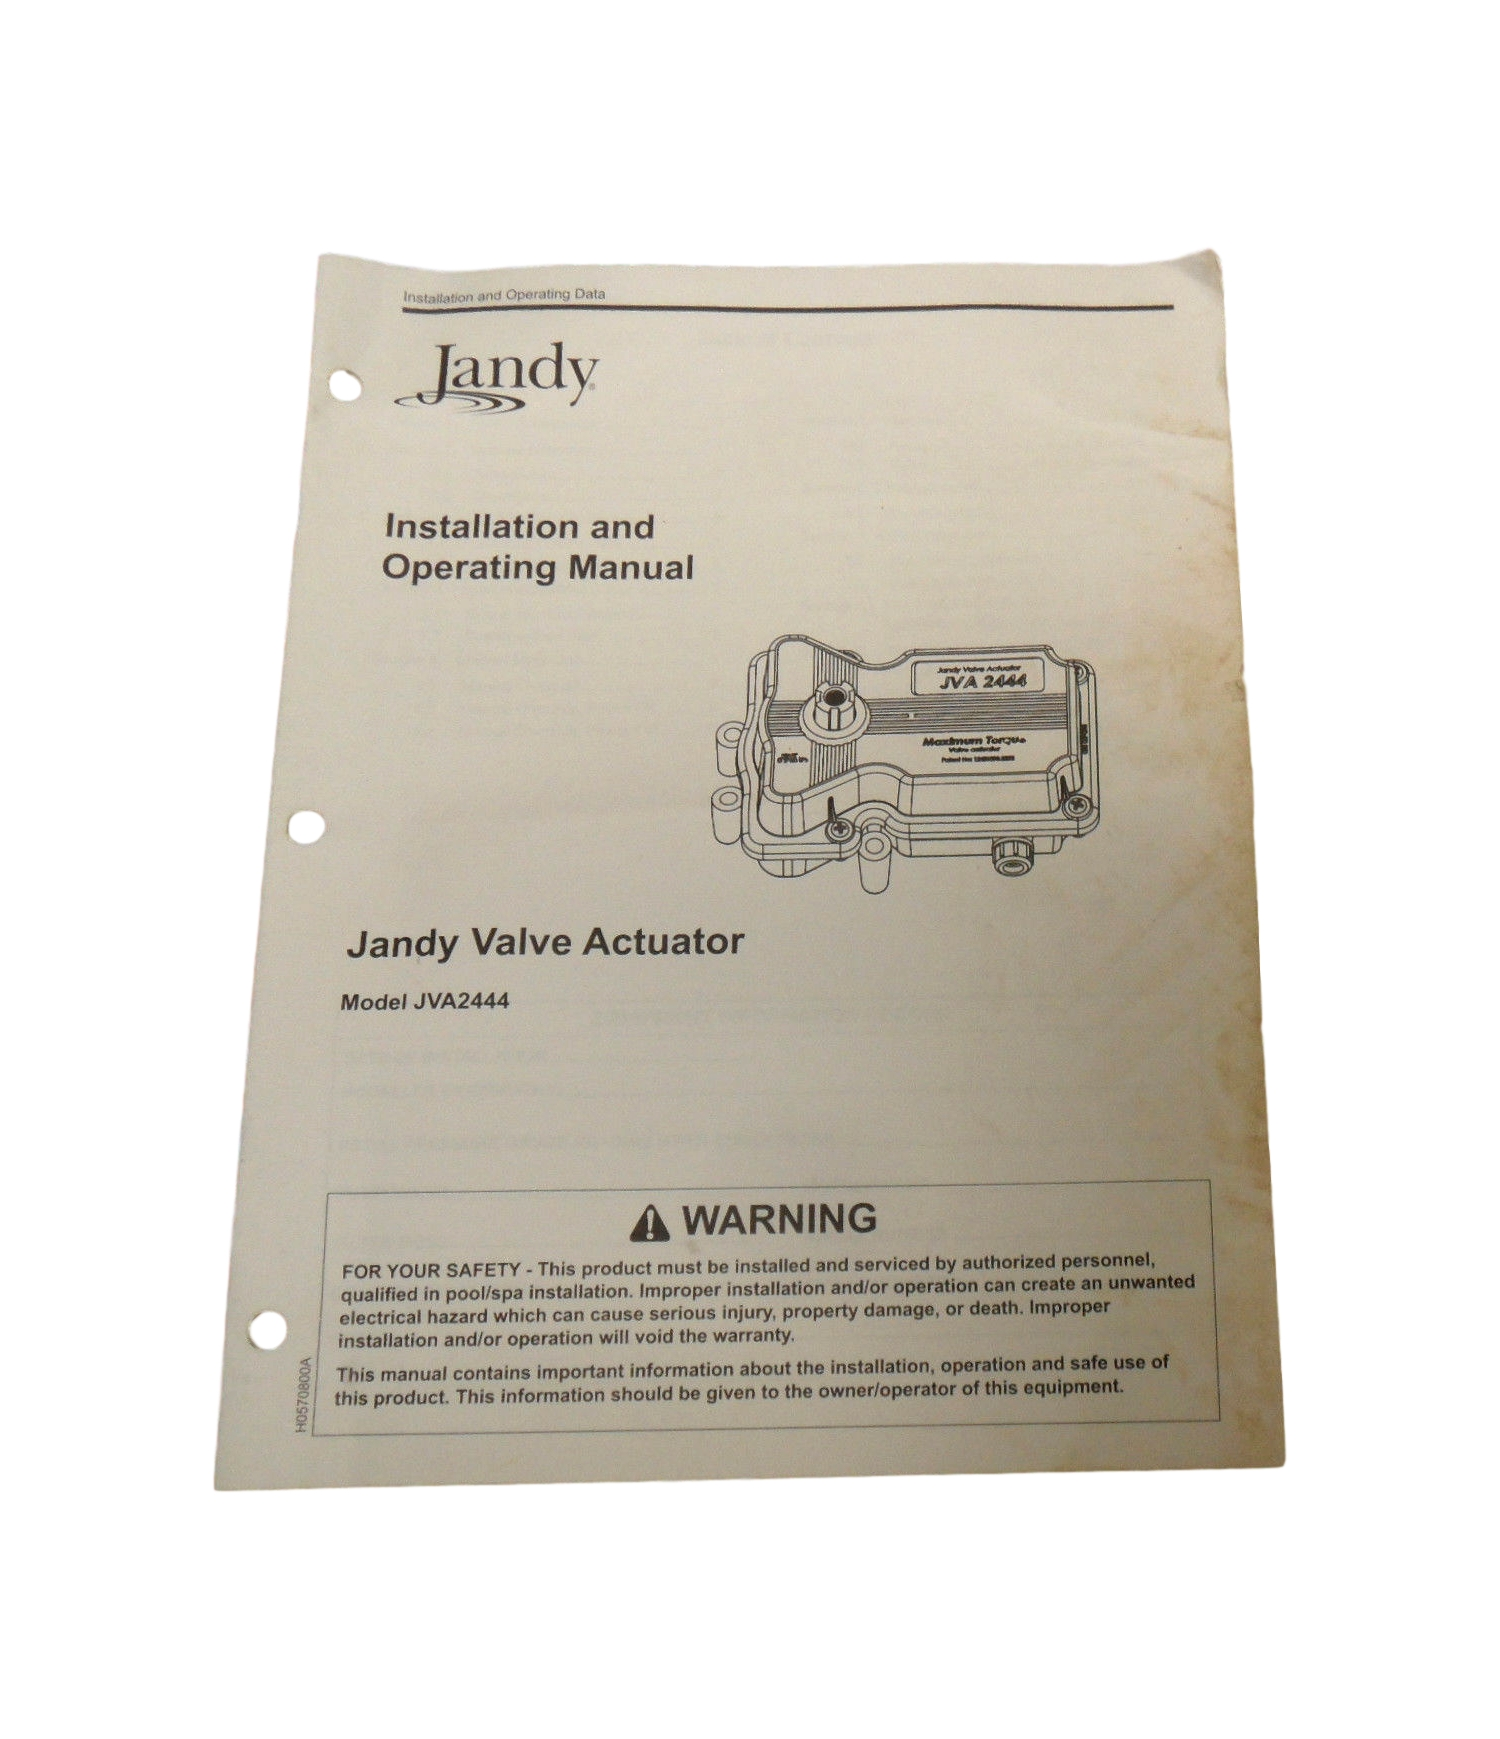 Jandy Jva244 Jva 2444 Valve Actuator Installation Owners Manual Wiring Diagram Responsive Image